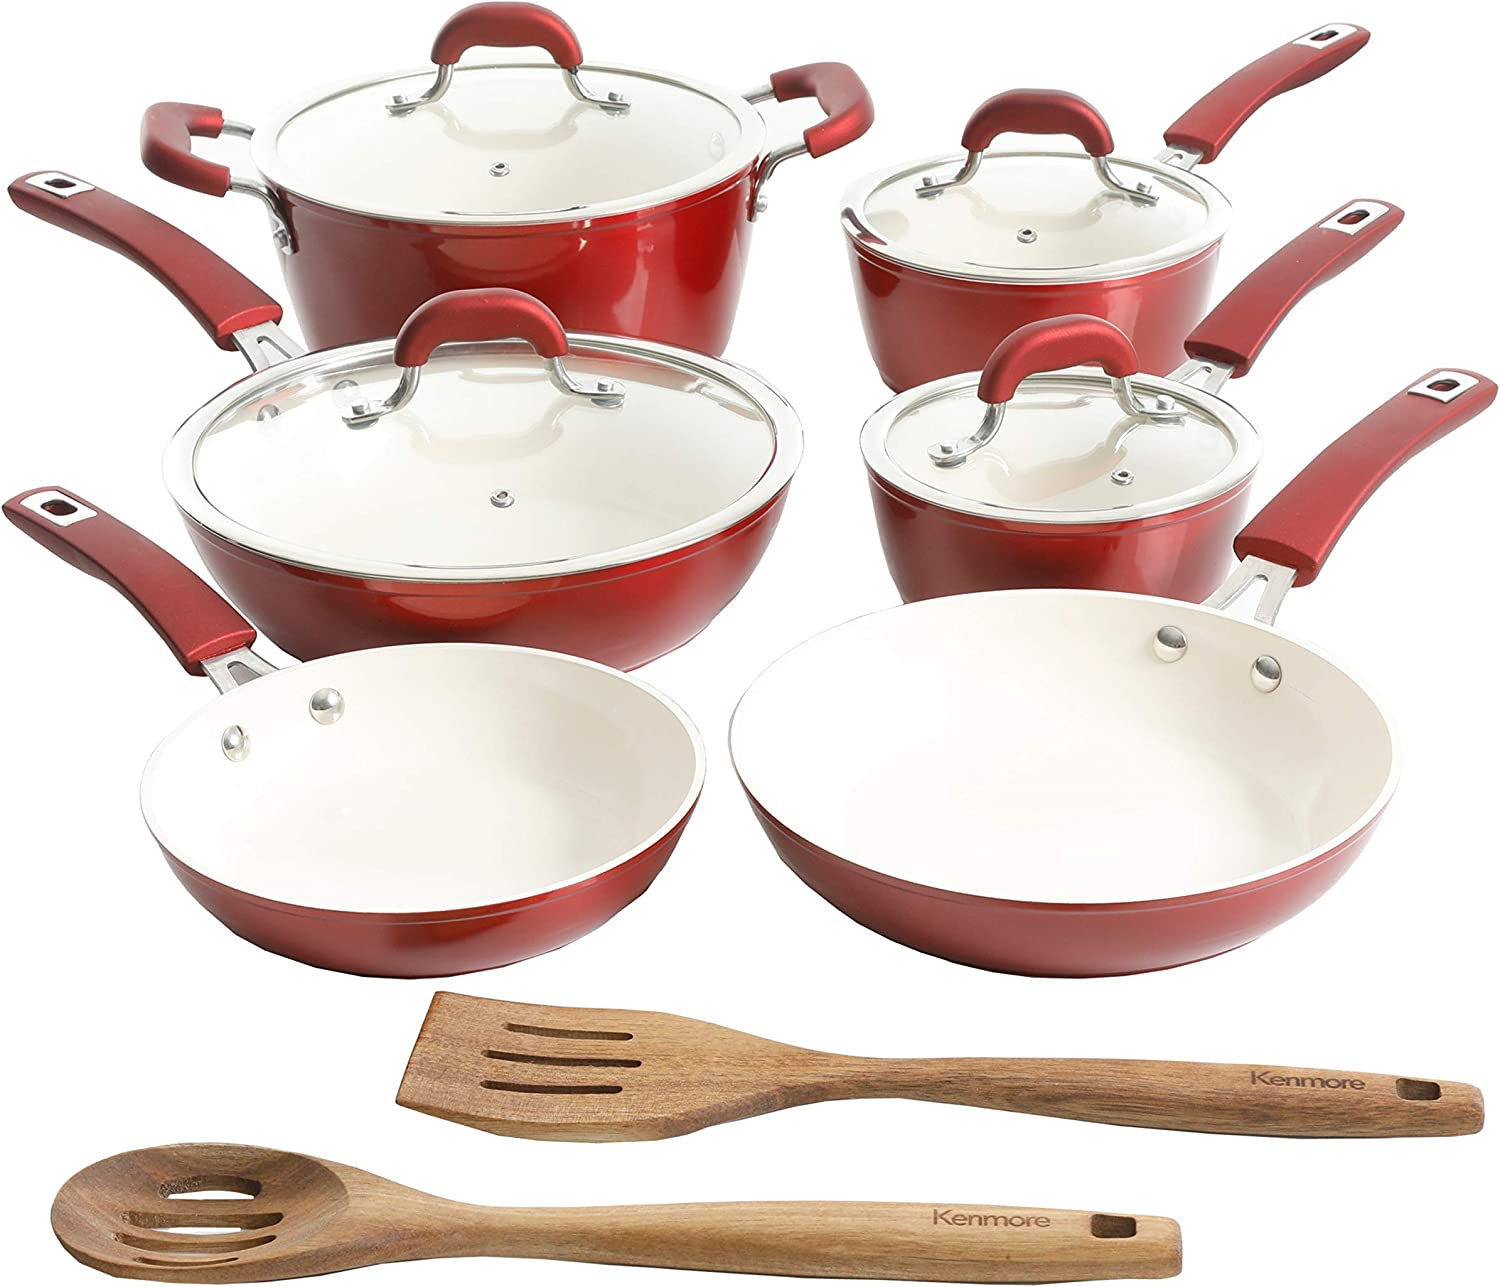 Kenmore Arlington Ceramic Cookware For Induction REVIEW